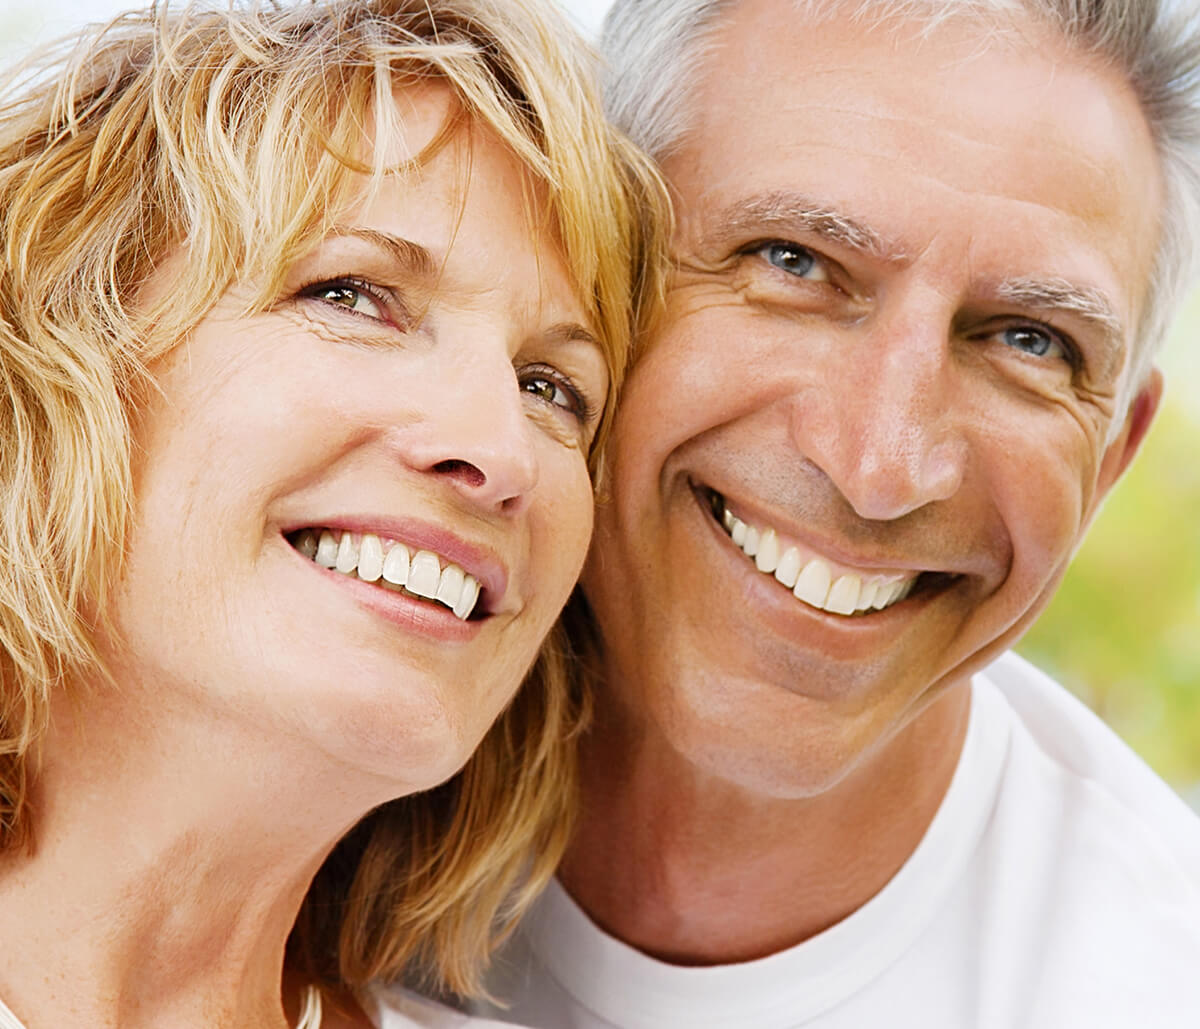 Best Dentist Near Me for Dentures in Quincy MA Area